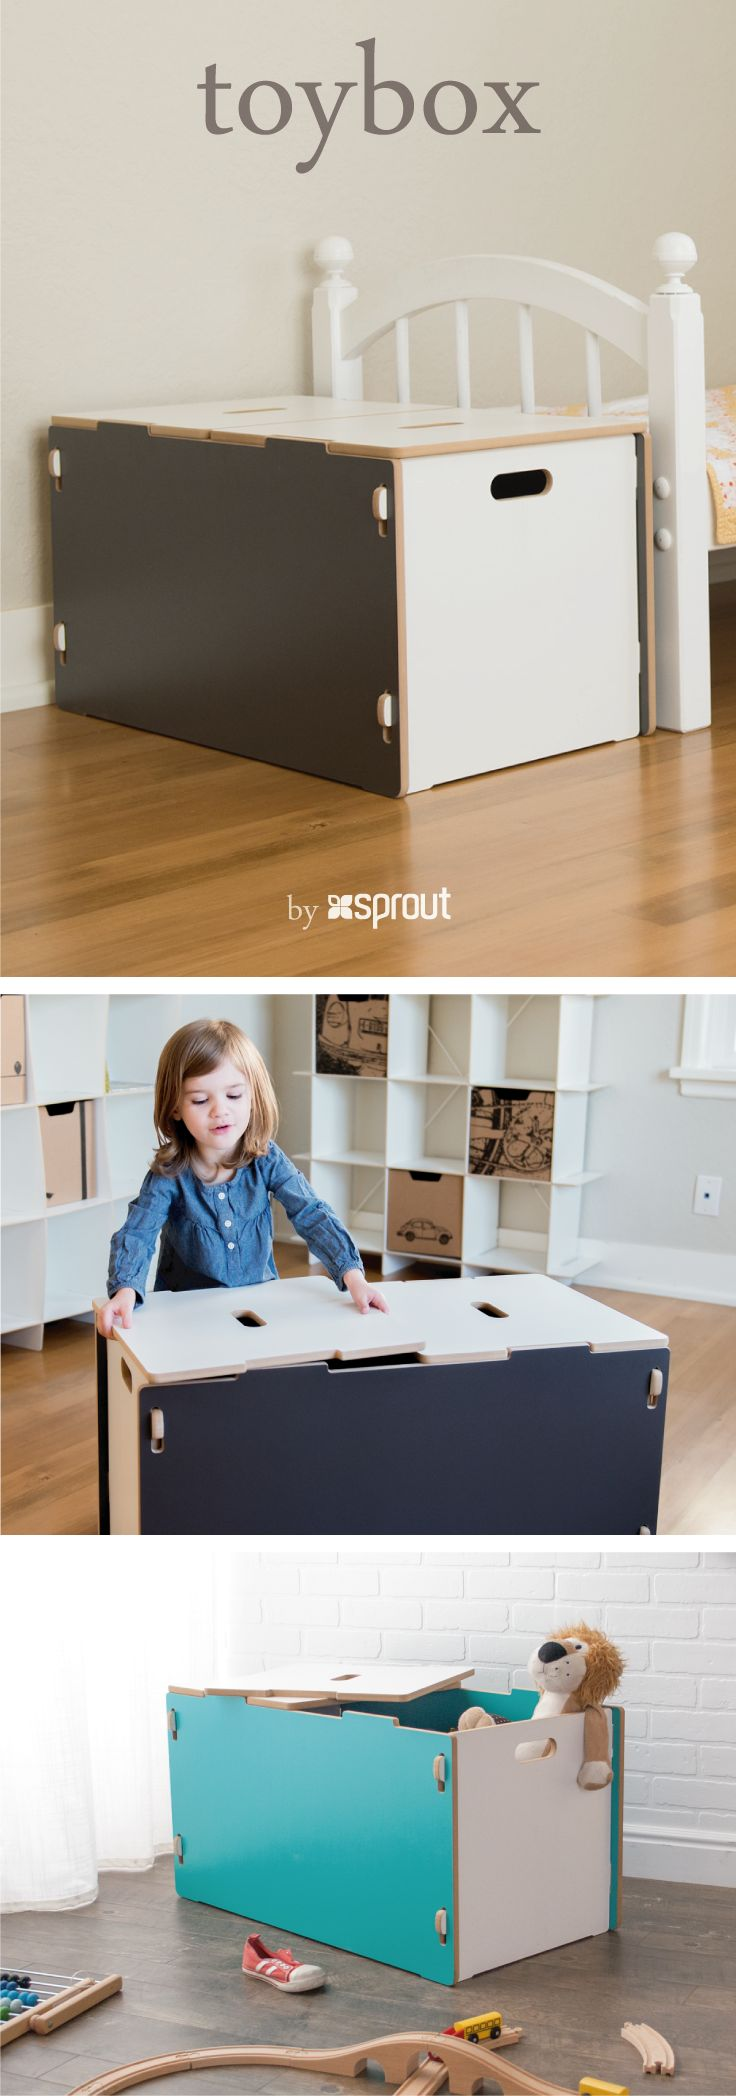 Modern Toy Box Living Room: 25+ Best Ideas About Wooden Toy Boxes On Pinterest